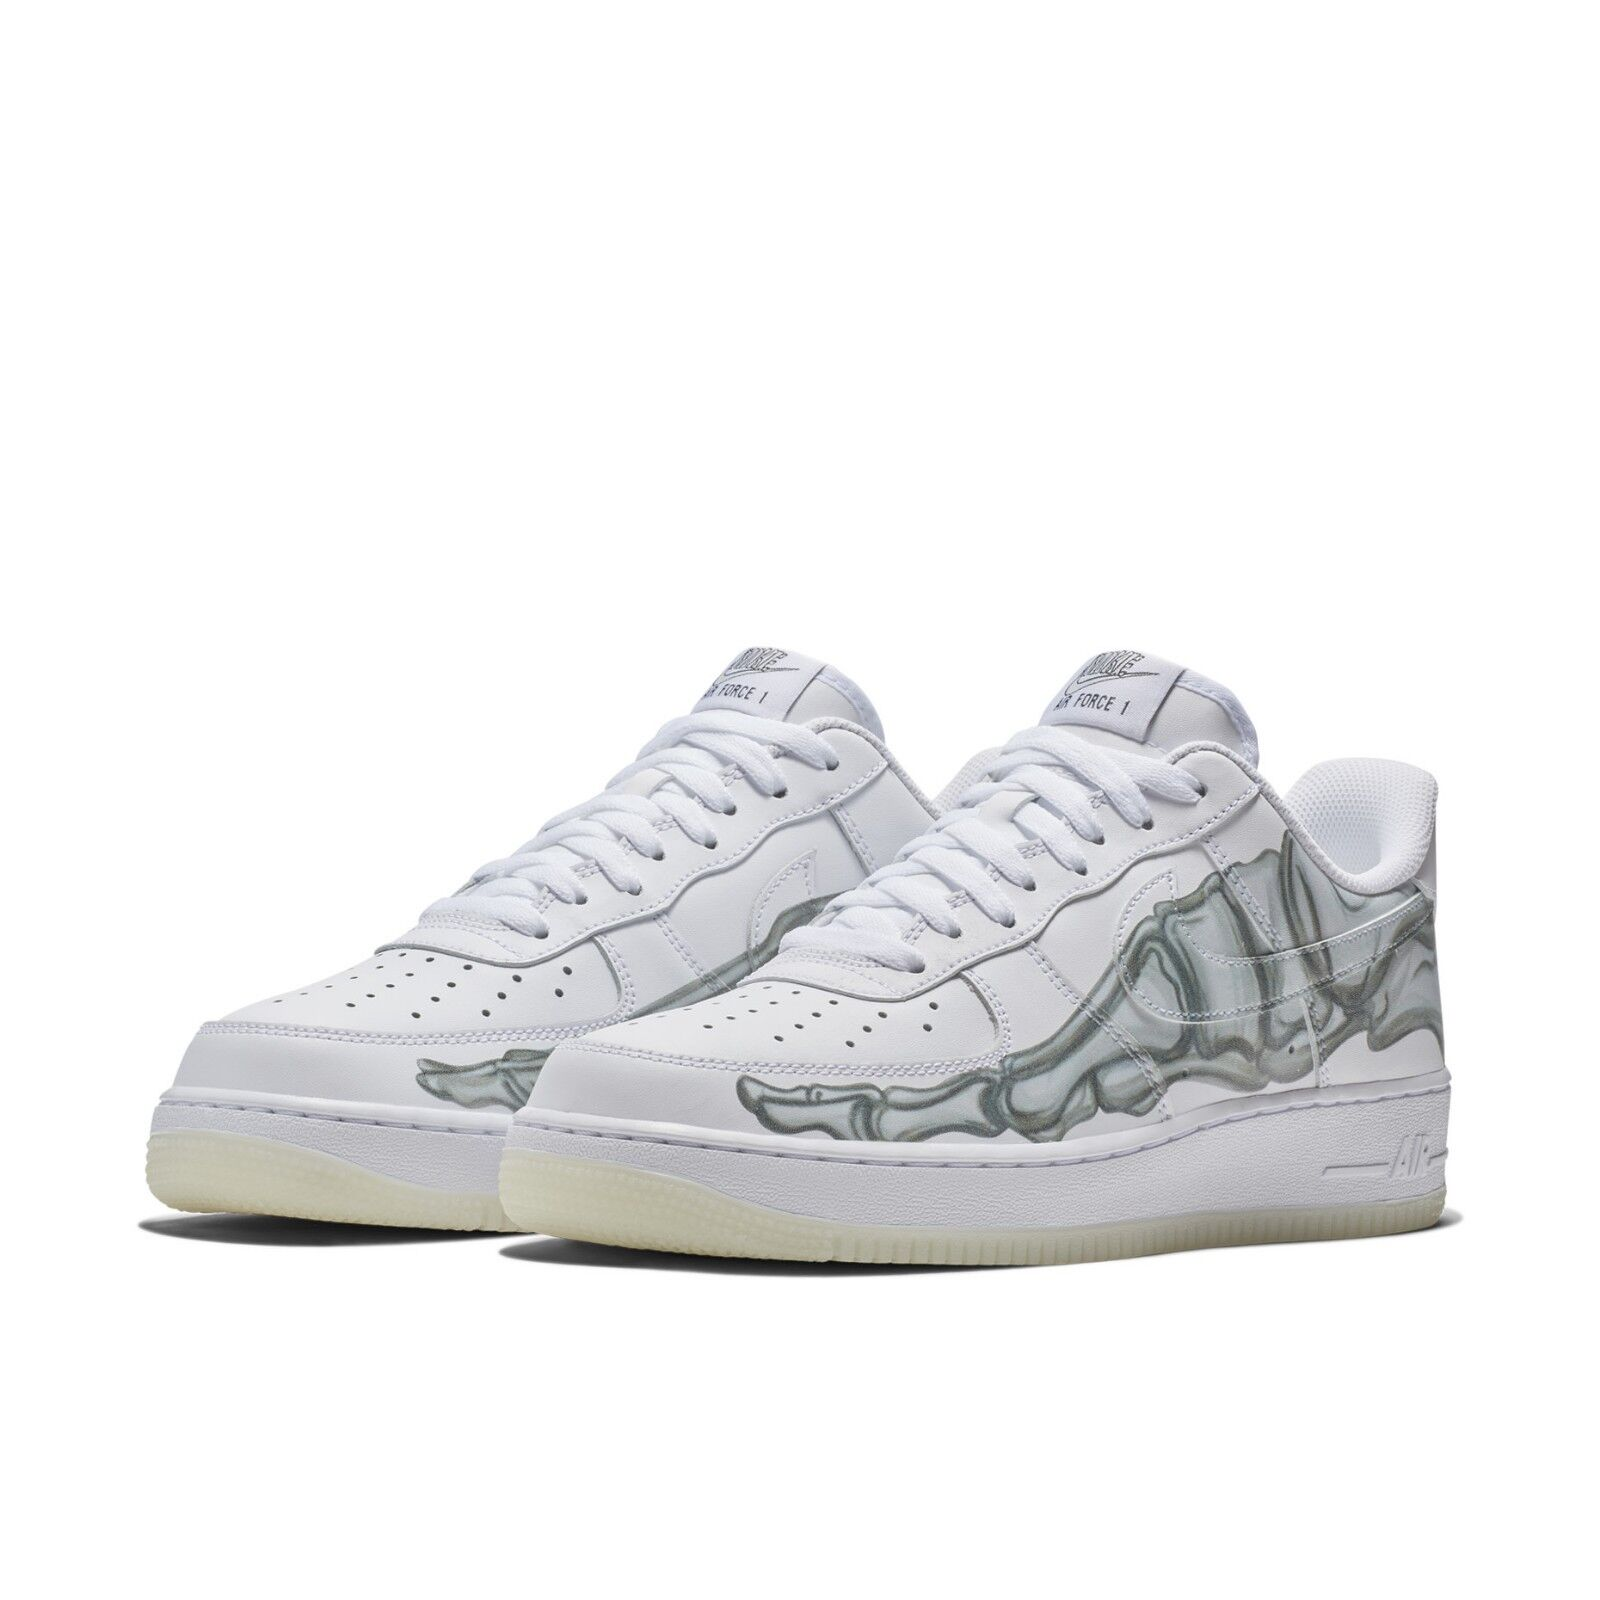 los angeles e29d2 f543c Nike Air Force 1 07 Low QS Skeleton Halloween 2018 Glow In The Dark  BQ7541-100